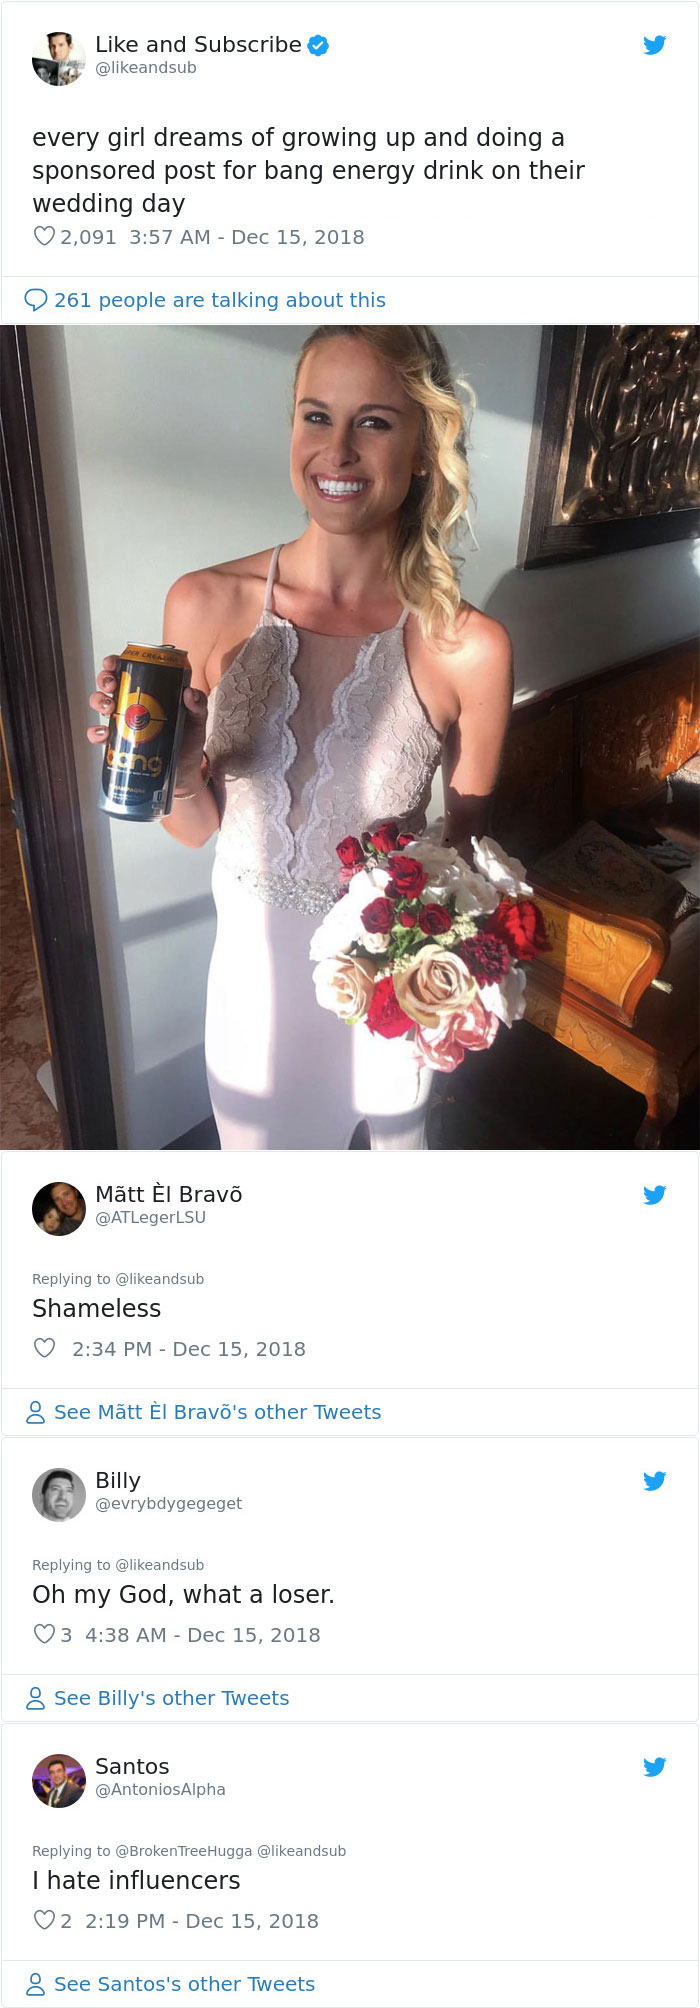 Every Girl Dreams Of Growing Up And Doing A Sponsored Post For Bang Energy Drink On Their Wedding Day